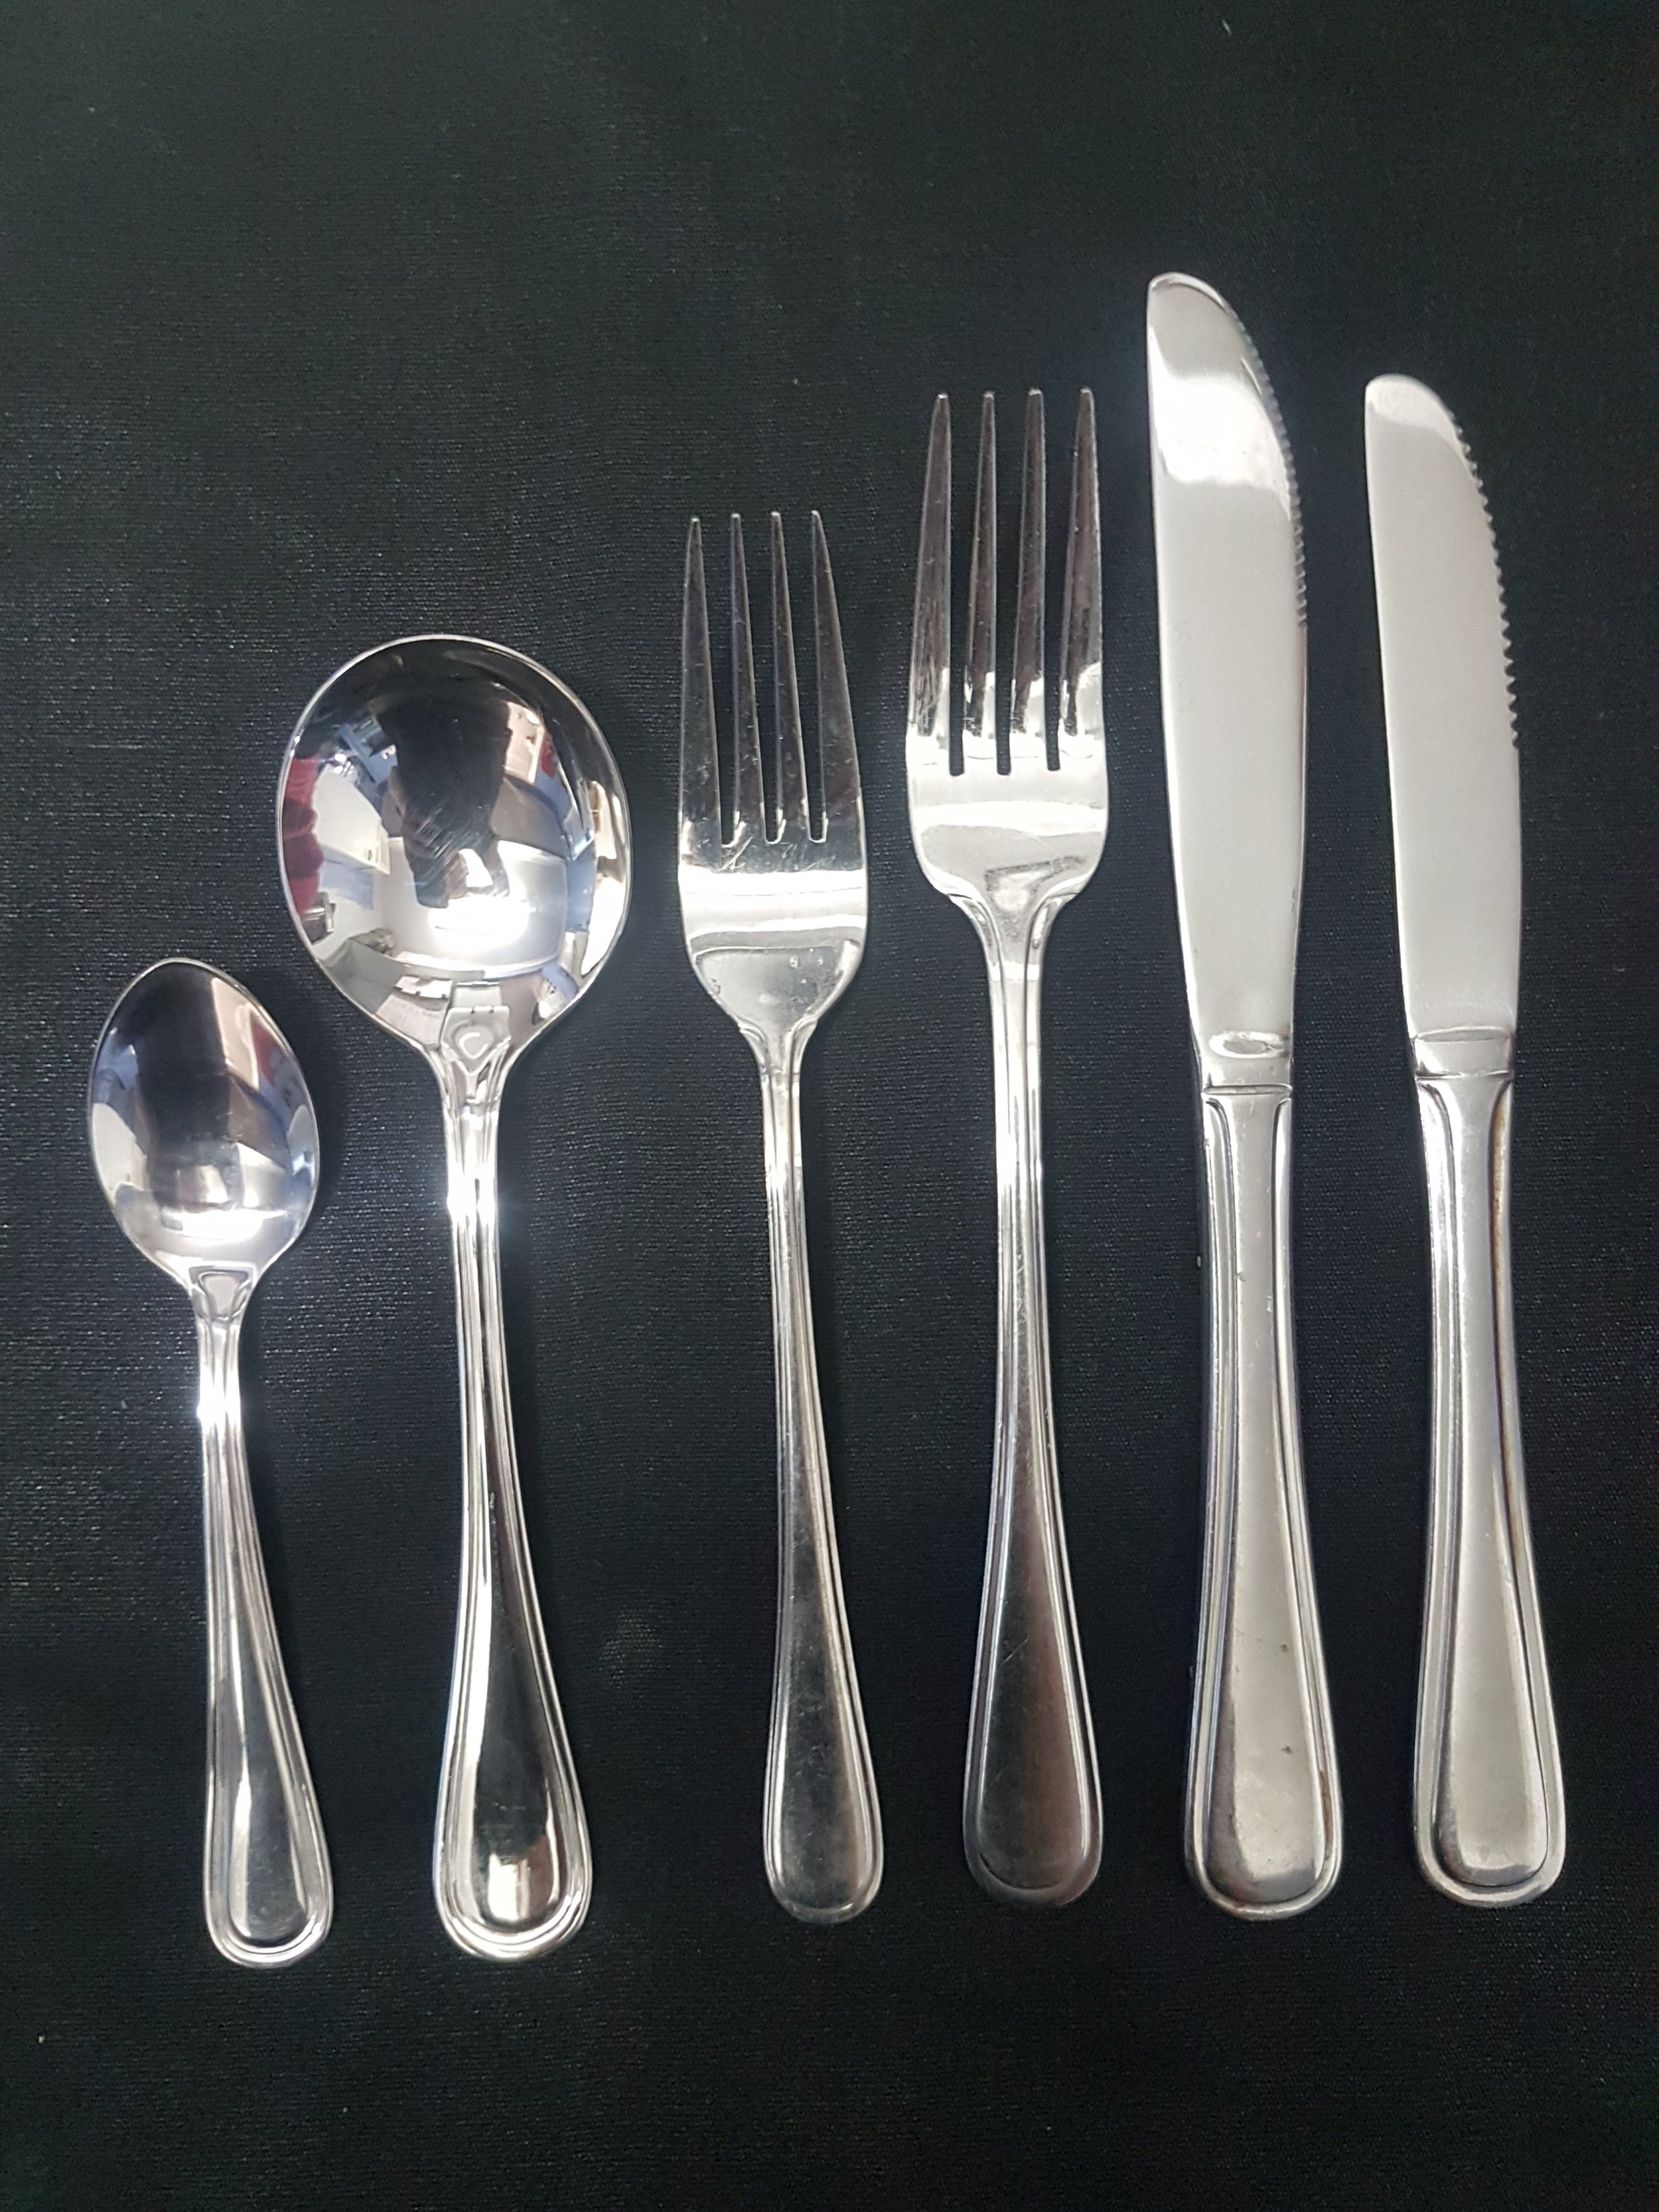 stainless steel cutlery - Rounded edge stainless steel cutleryTeaspoon .39cSoup Spoon .44cEntree Fork .44cDinner Fork .44cDinner Knife .44cEntree Knife .44c